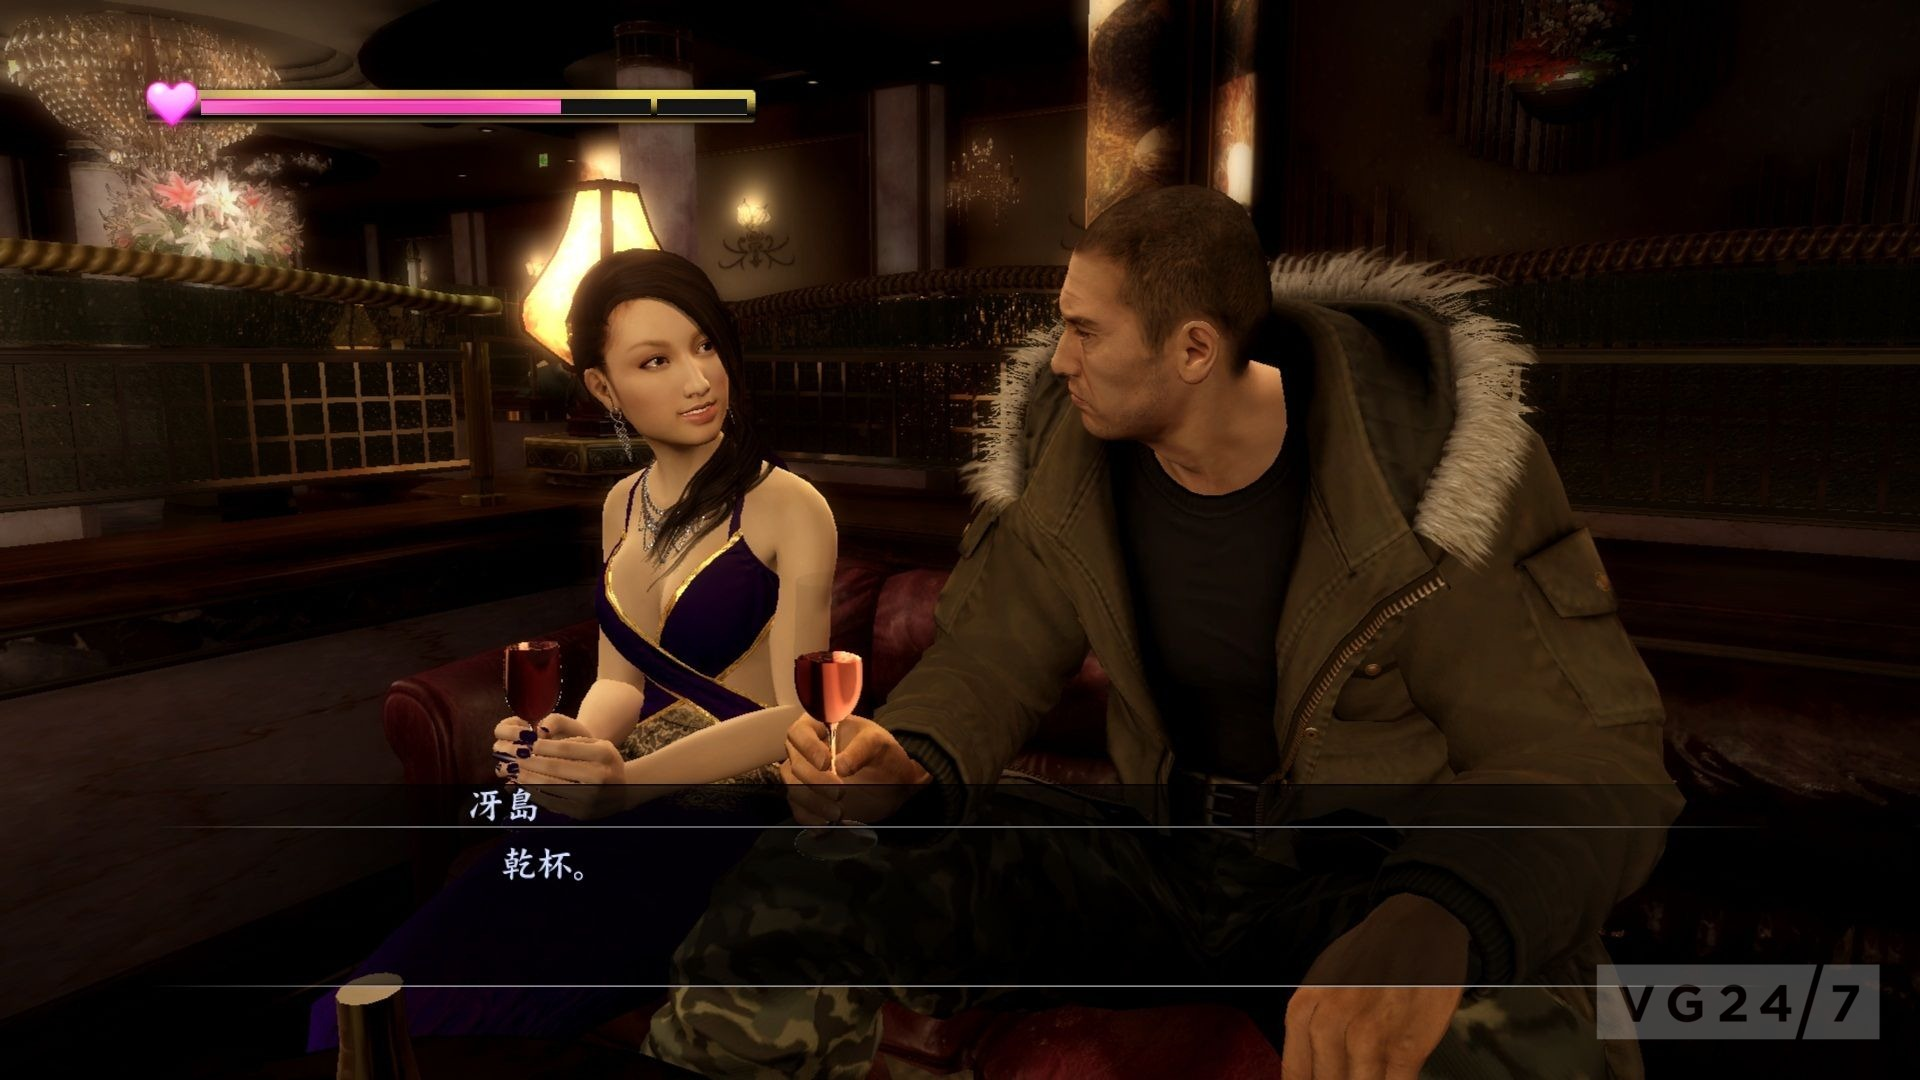 yakuza 4 hostess dating guide erena